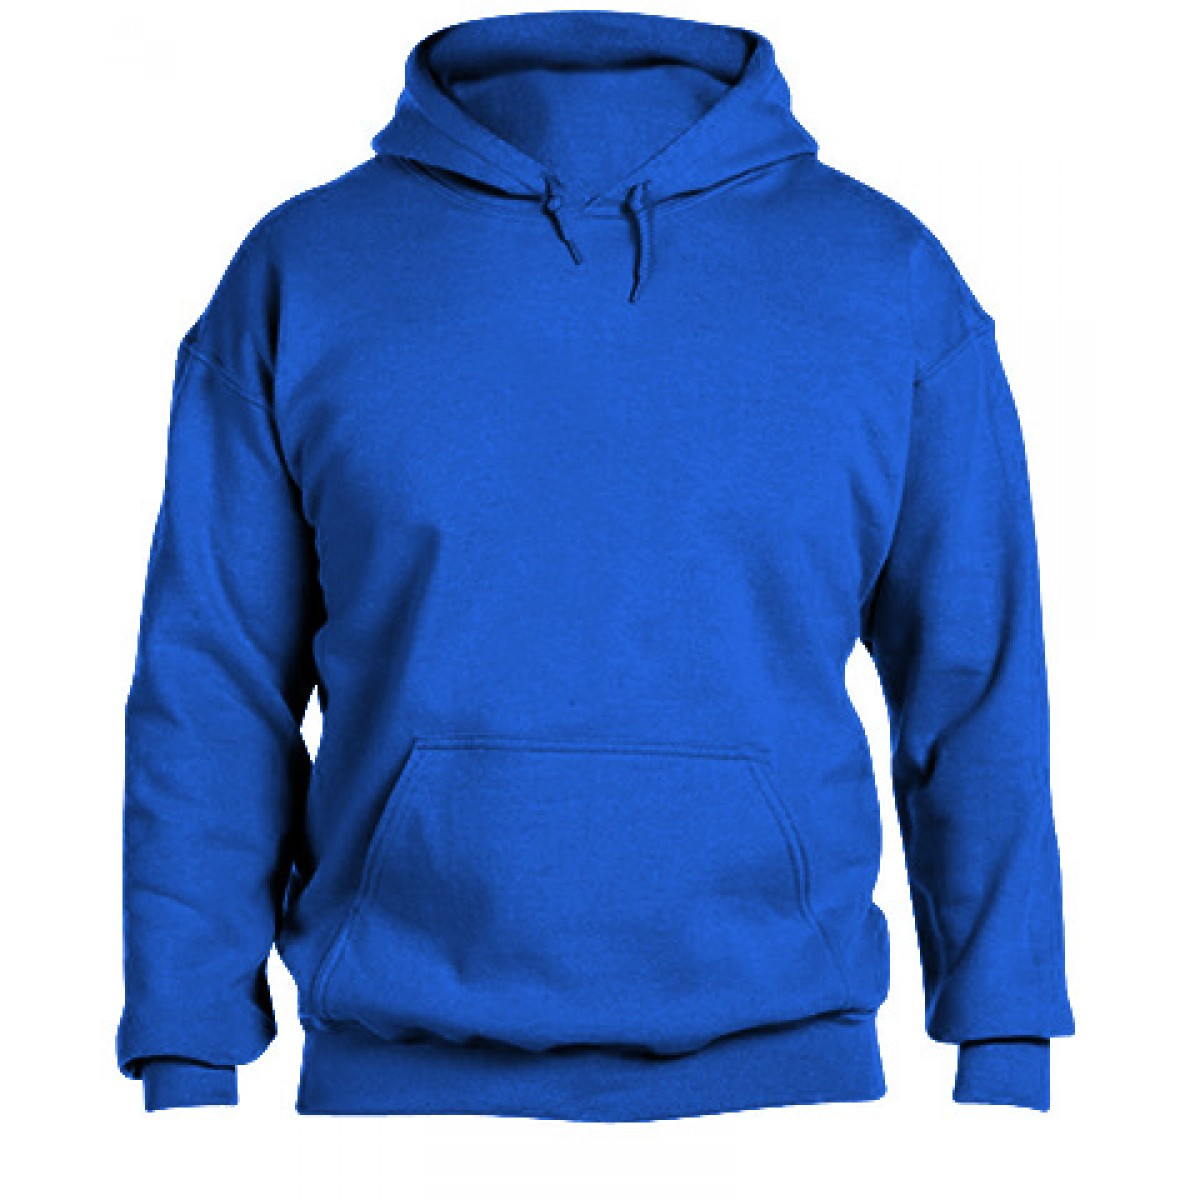 Hooded Sweatshirt 50/50 Heavy Blend-4XL